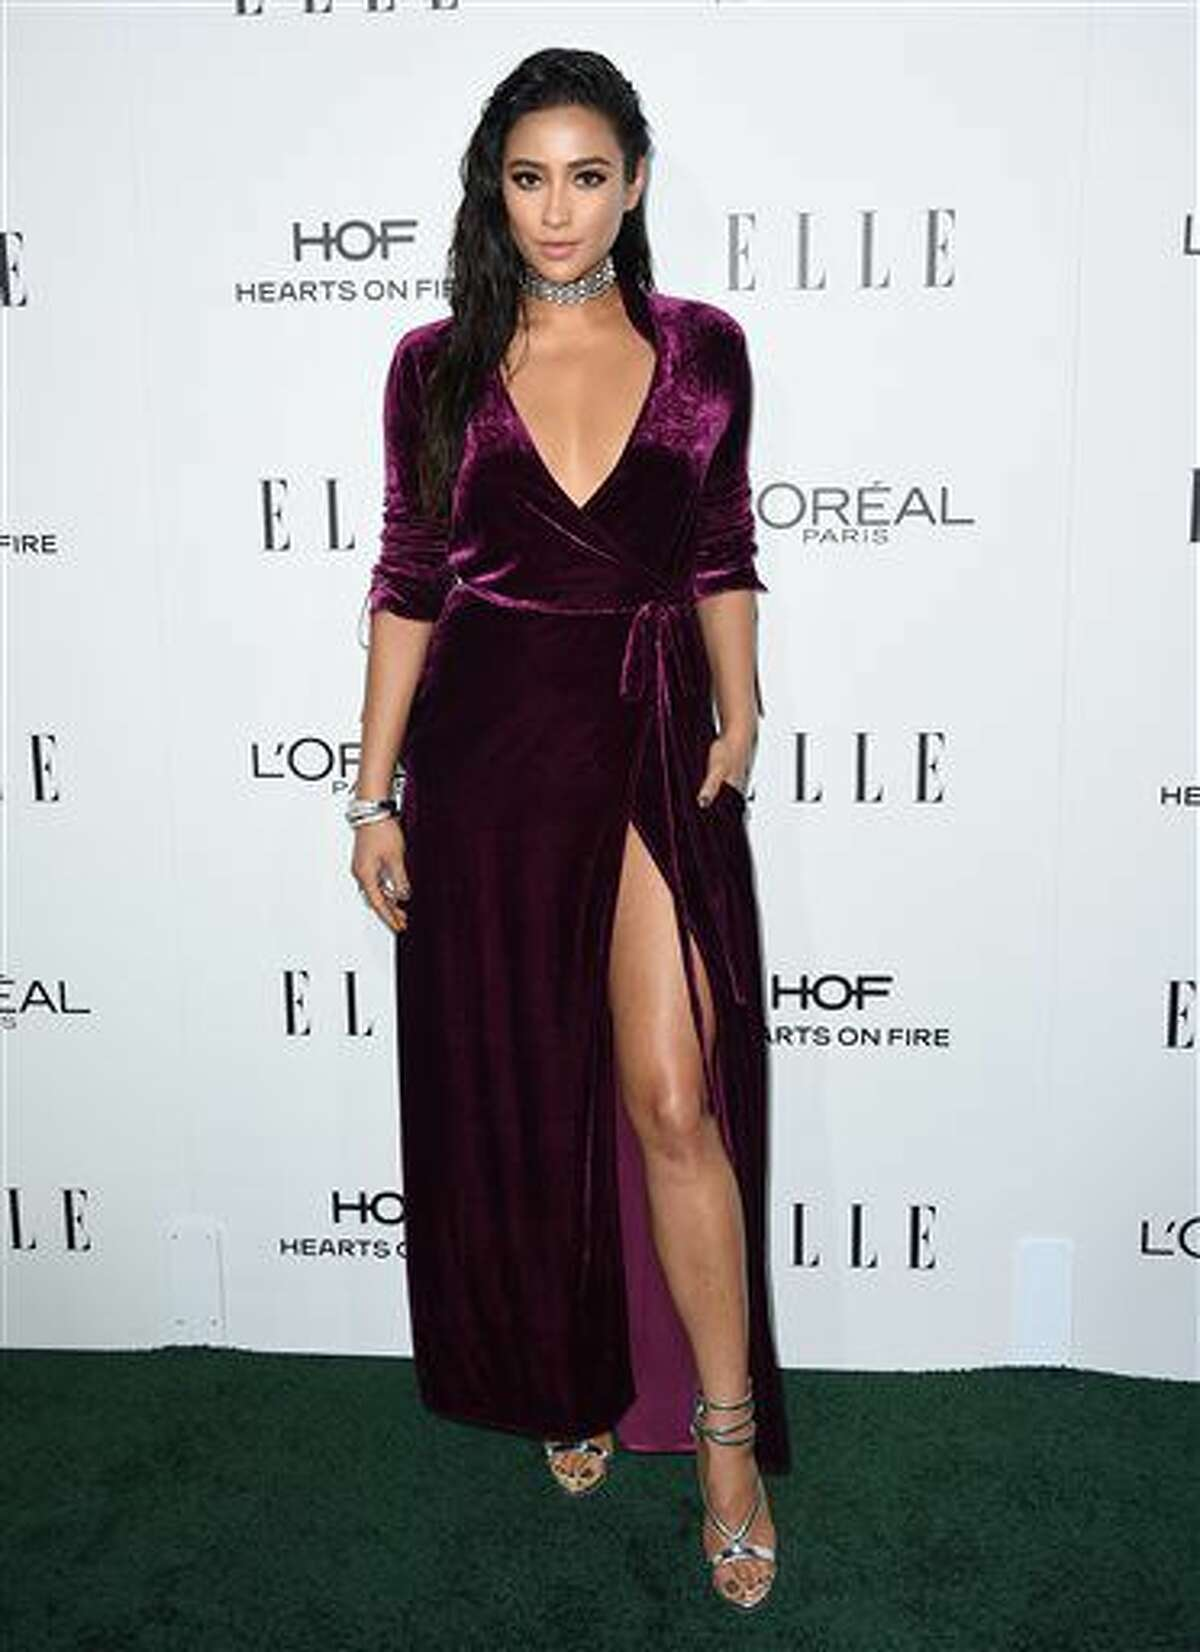 Shay Mitchell arrives at the 23rd annual ELLE Women in Hollywood Awards at the Four Season Hotel on Monday, Oct. 24, 2016, in Los Angeles. (Photo by Jordan Strauss/Invision/AP)